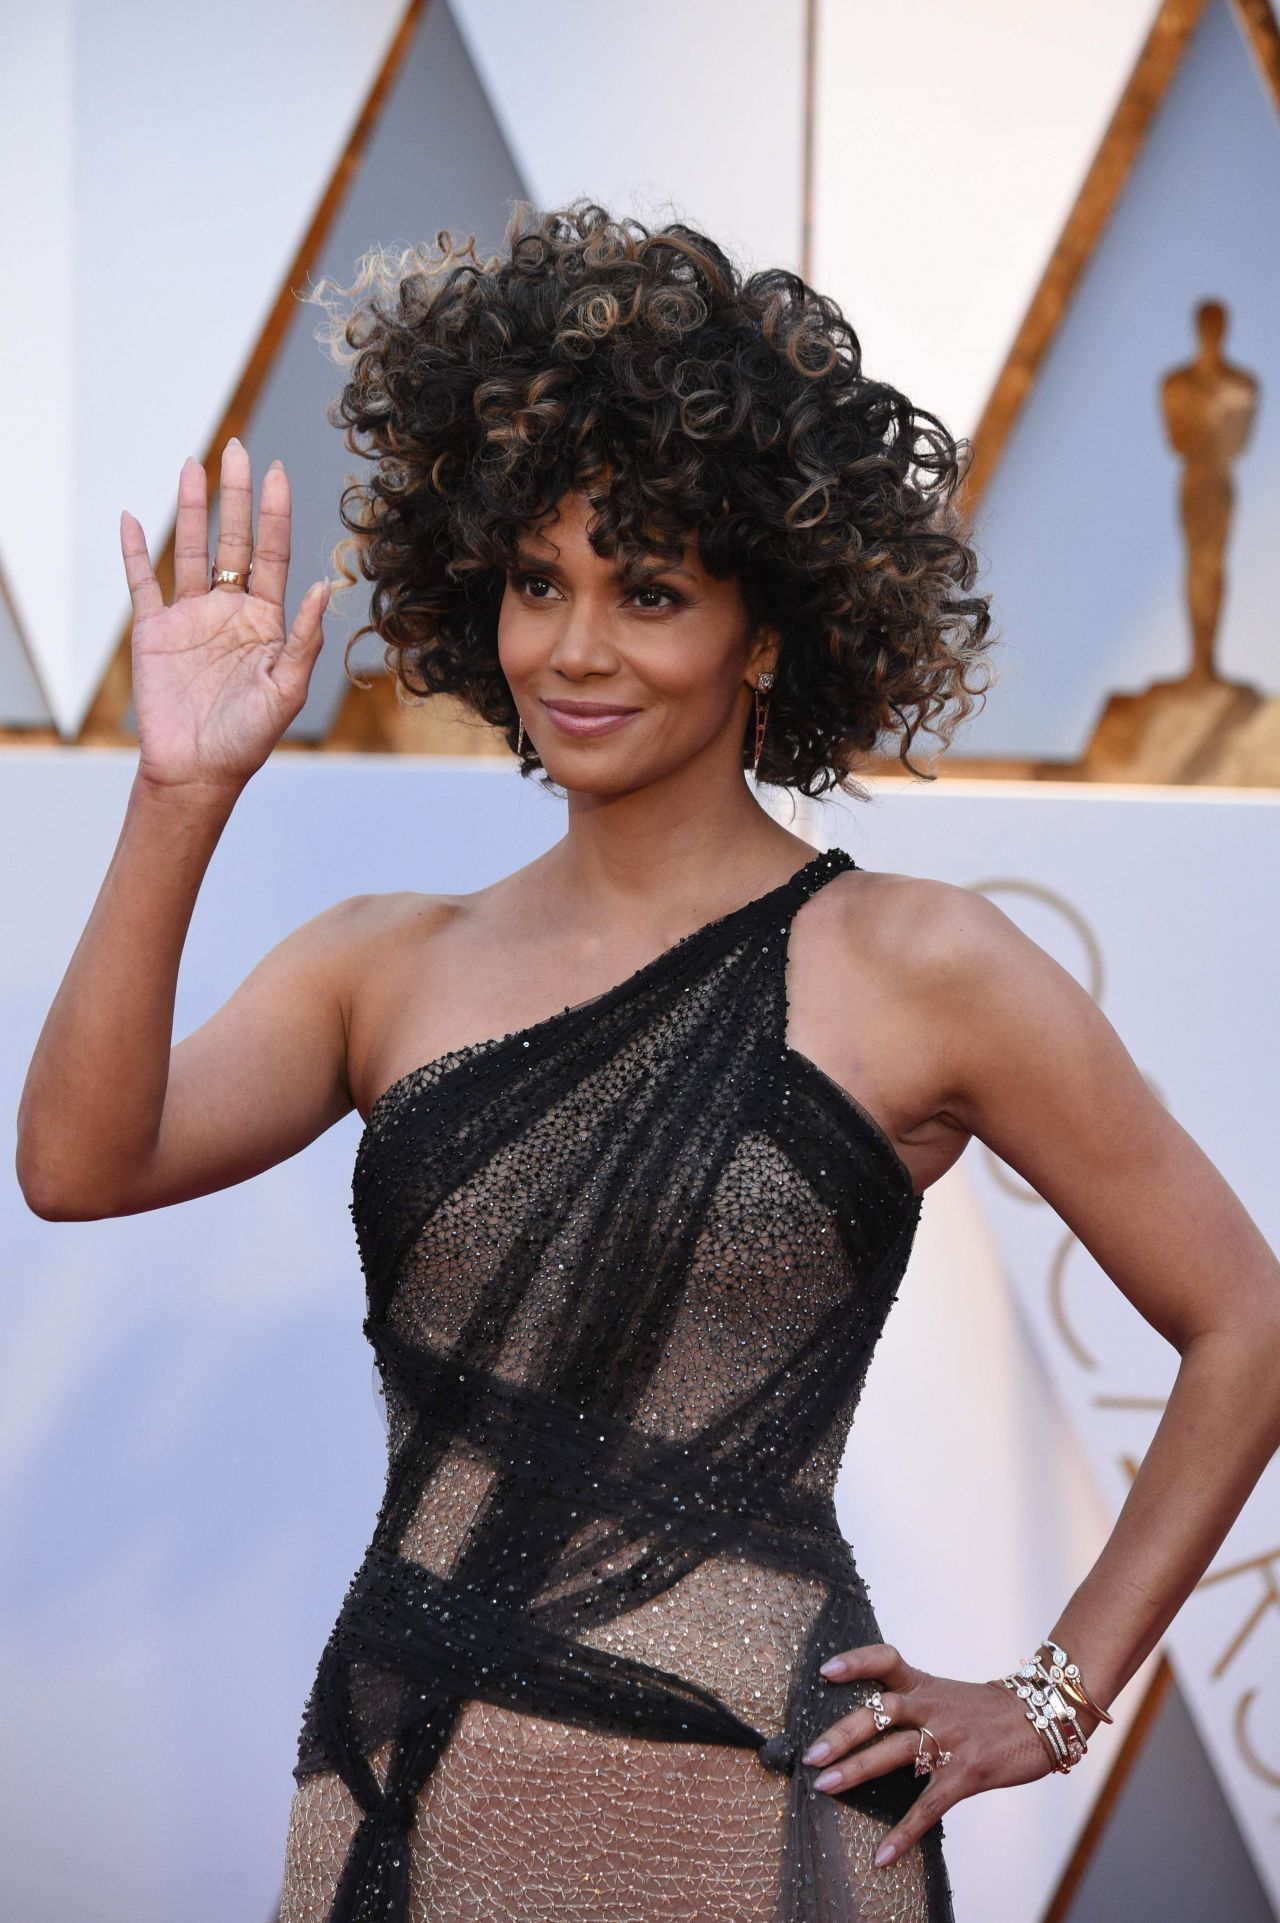 20 In The Vfx Oscar Race moreover Oscars Dates Set Through 2018 in addition Tv Remake Boom Ignoring Black  edies likewise 30742 together with Halle Berry Oscars 2017 Red Carpet Hollywood 704717. on 2015 oscar nominations list